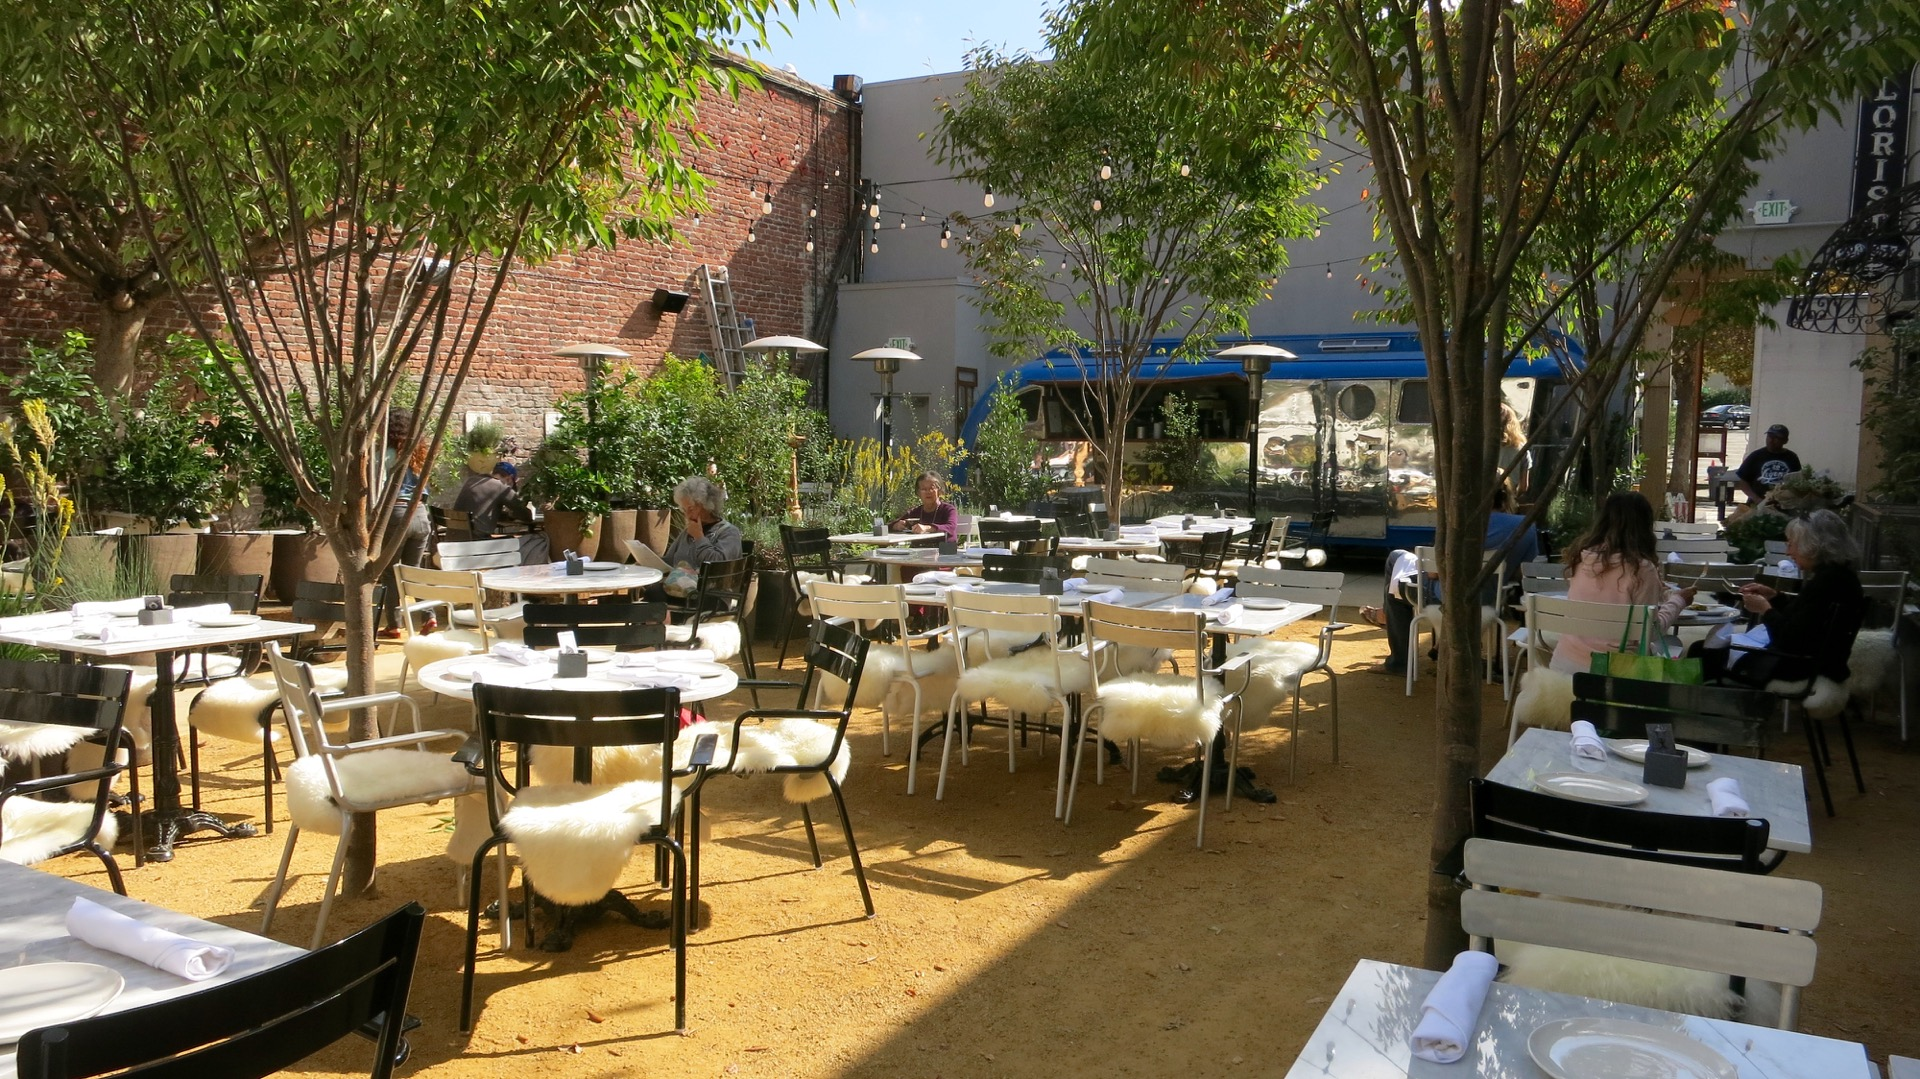 The seated outdoor dining area within the 1200-square-foot garden at Grand Fare Market.